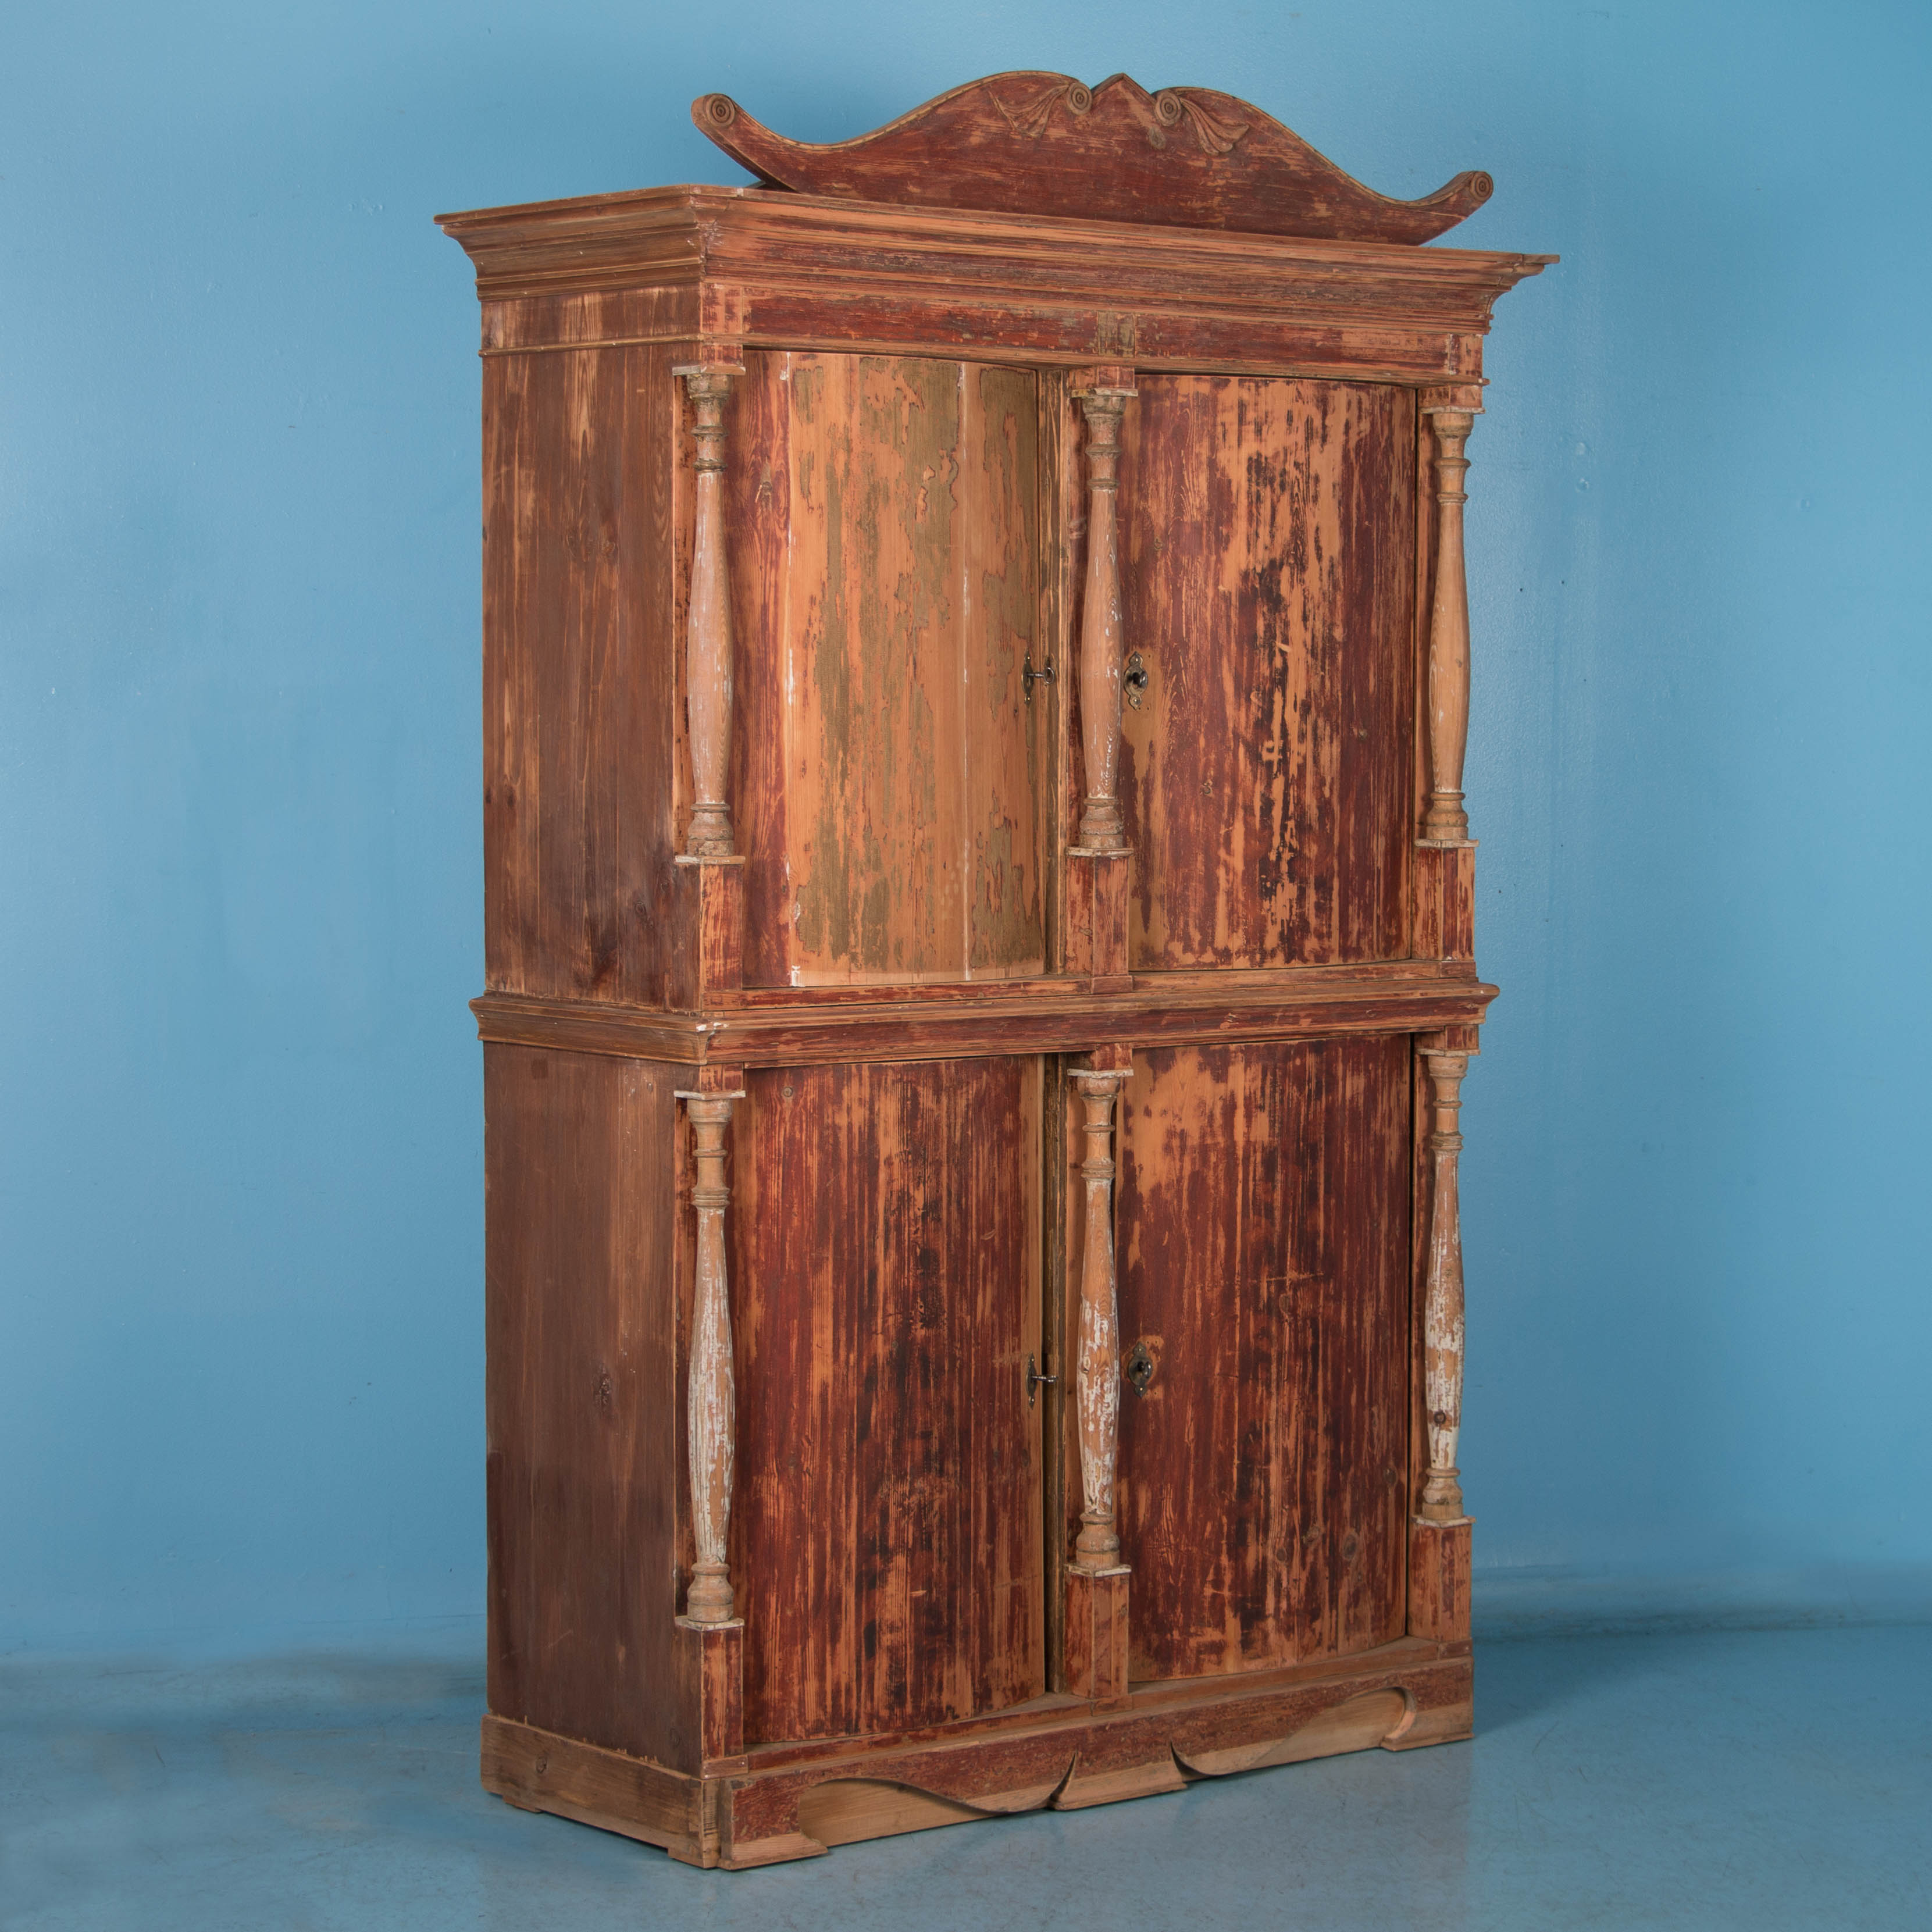 Armoires U0026 Wardrobes | Scandinavian Antiques | Antique Furniture For Sale